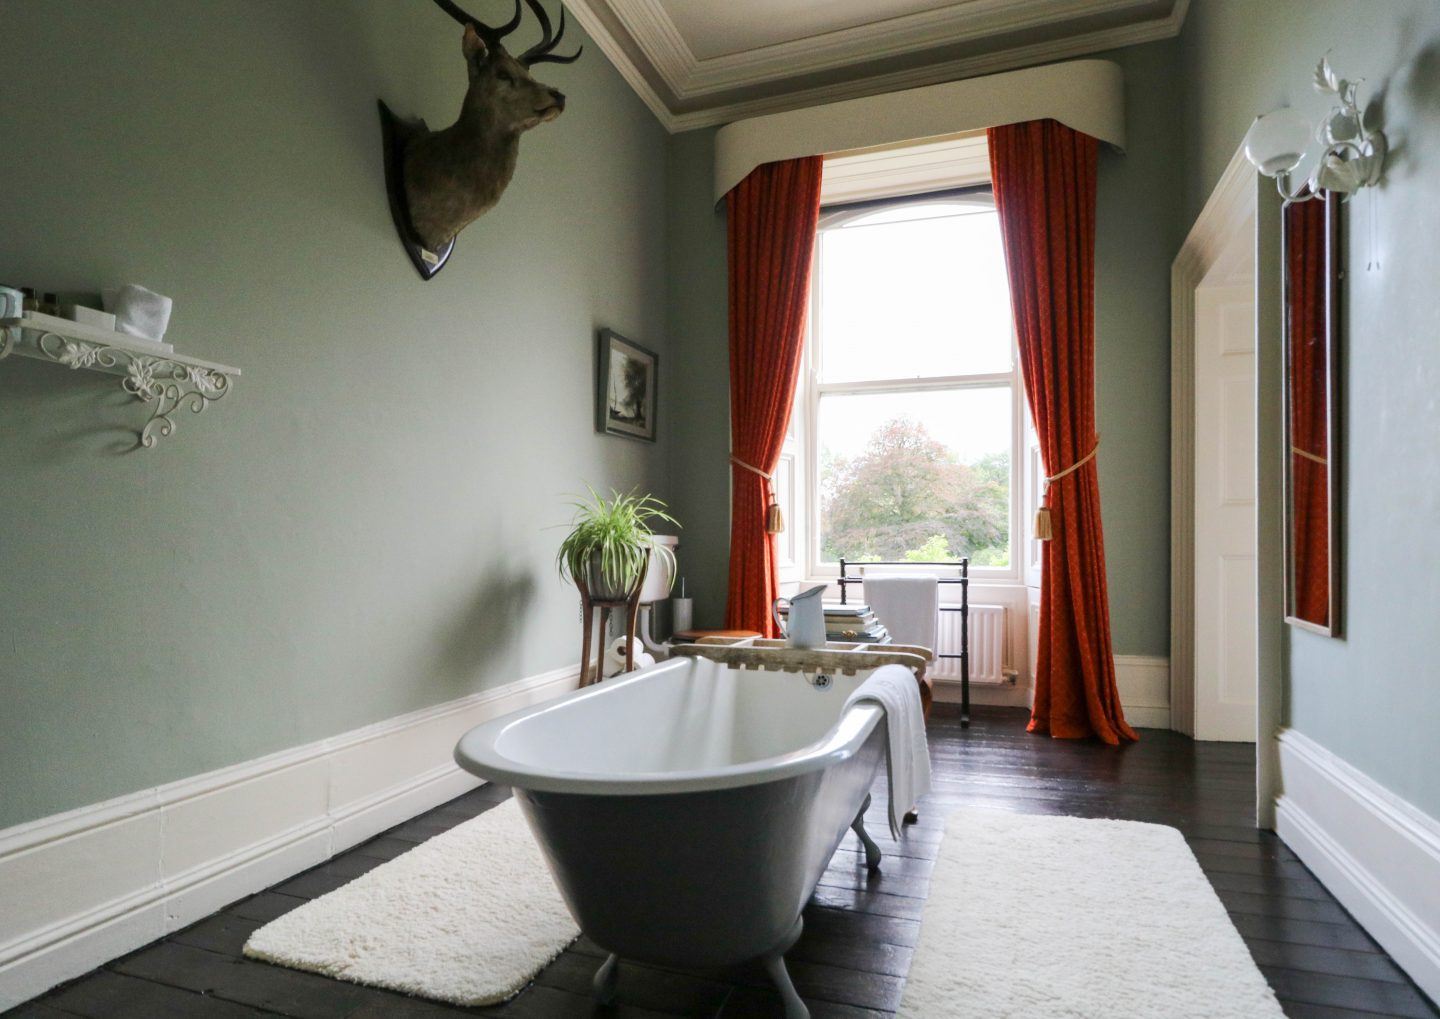 Ballyvolane House_Country Retreat in County Cork Ireland_ Bathroom with vintage tub and views